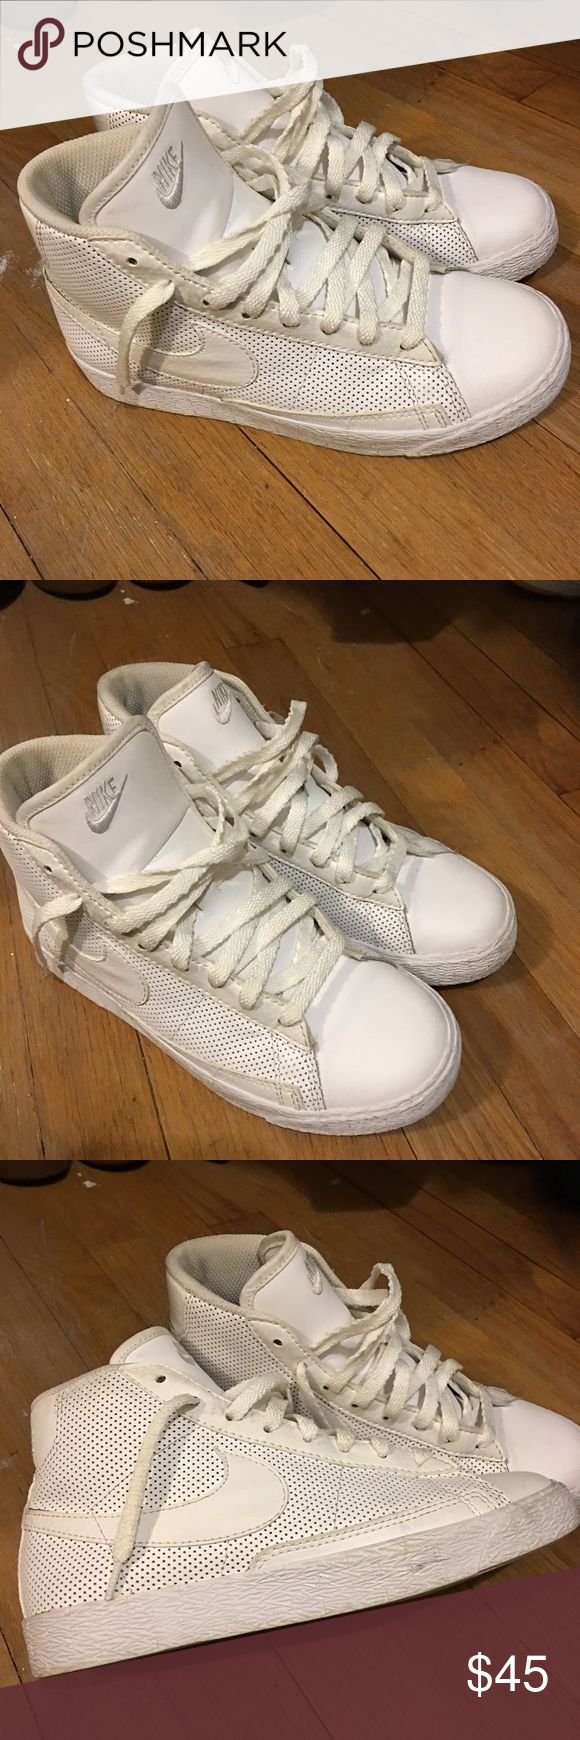 All White Nike Blazers Size 3Y in boys but I used to wear them and I am a size 6.5 in women's. It was a little hard to get my foot in and no room when my foot was actually in. I would say they could better fit a 5.5 or 6 in women's. Comment for any concerns. Nike Shoes Sneakers